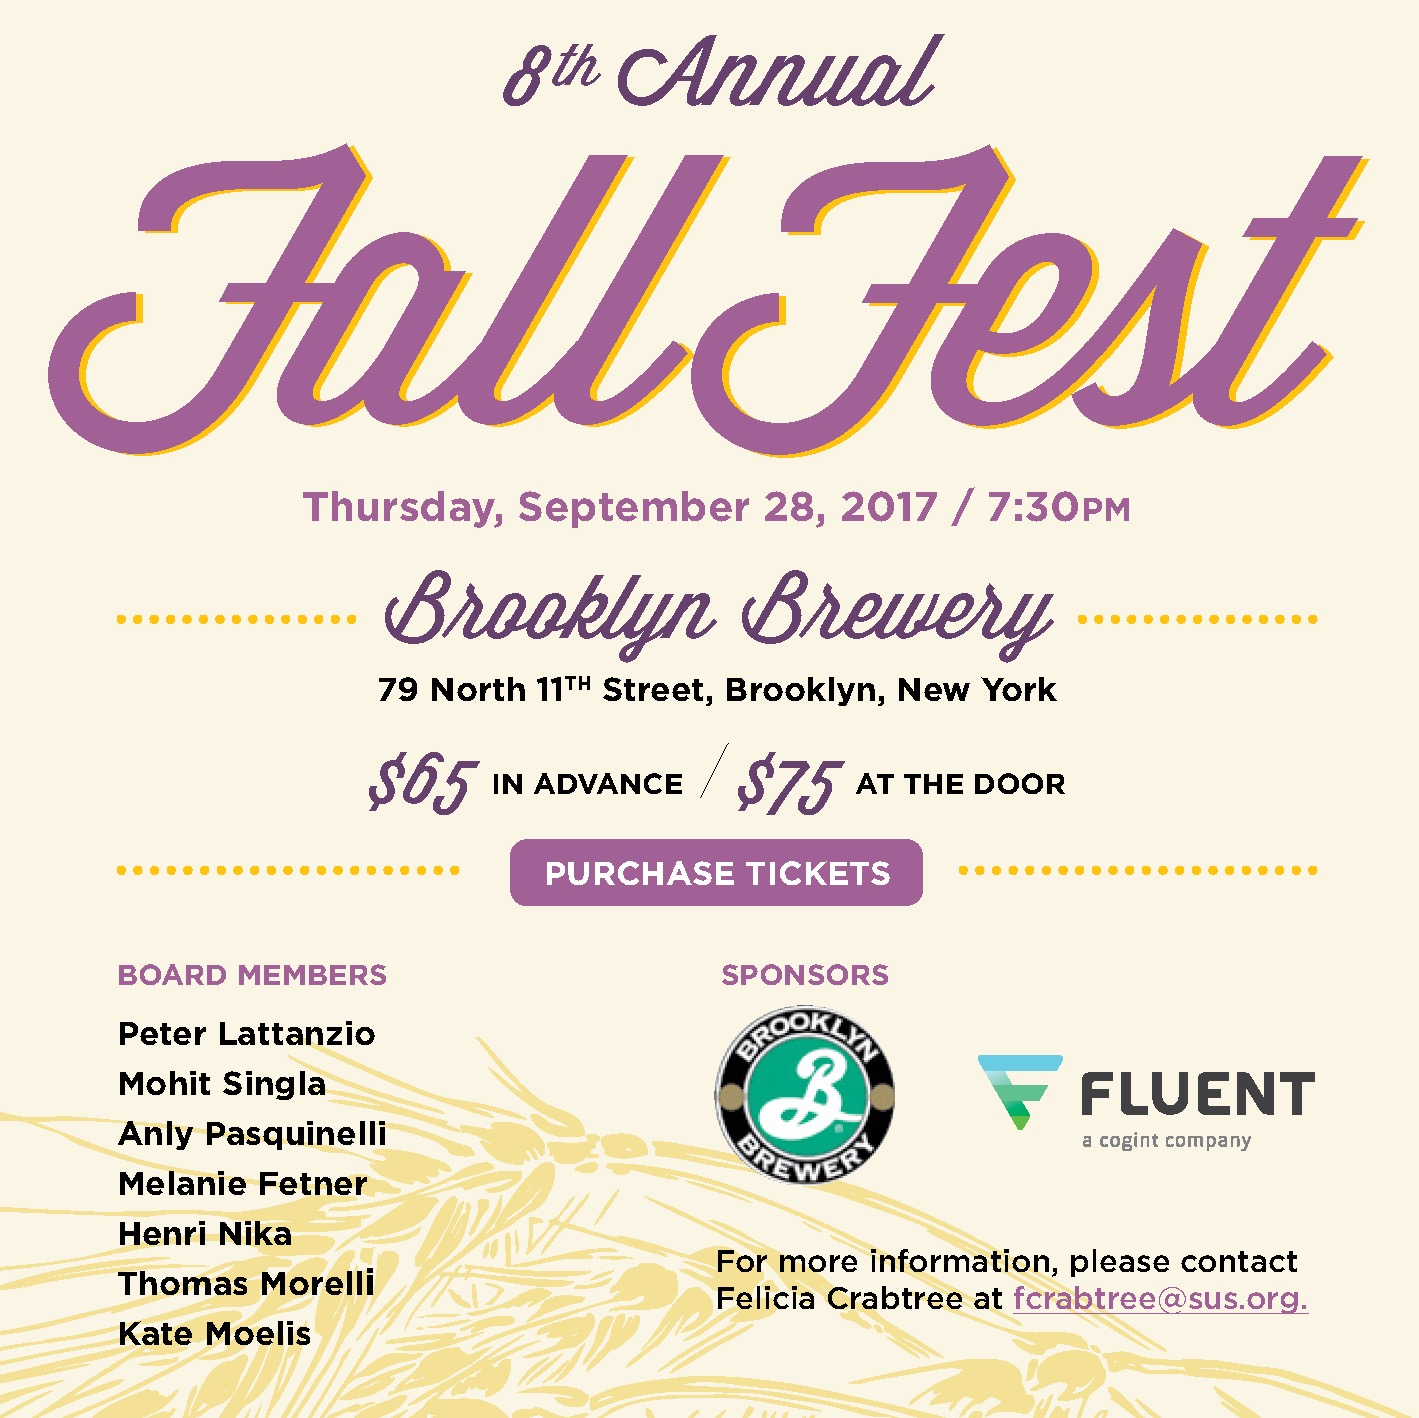 FallFest at the Brooklyn Brewery: September 28, 2017